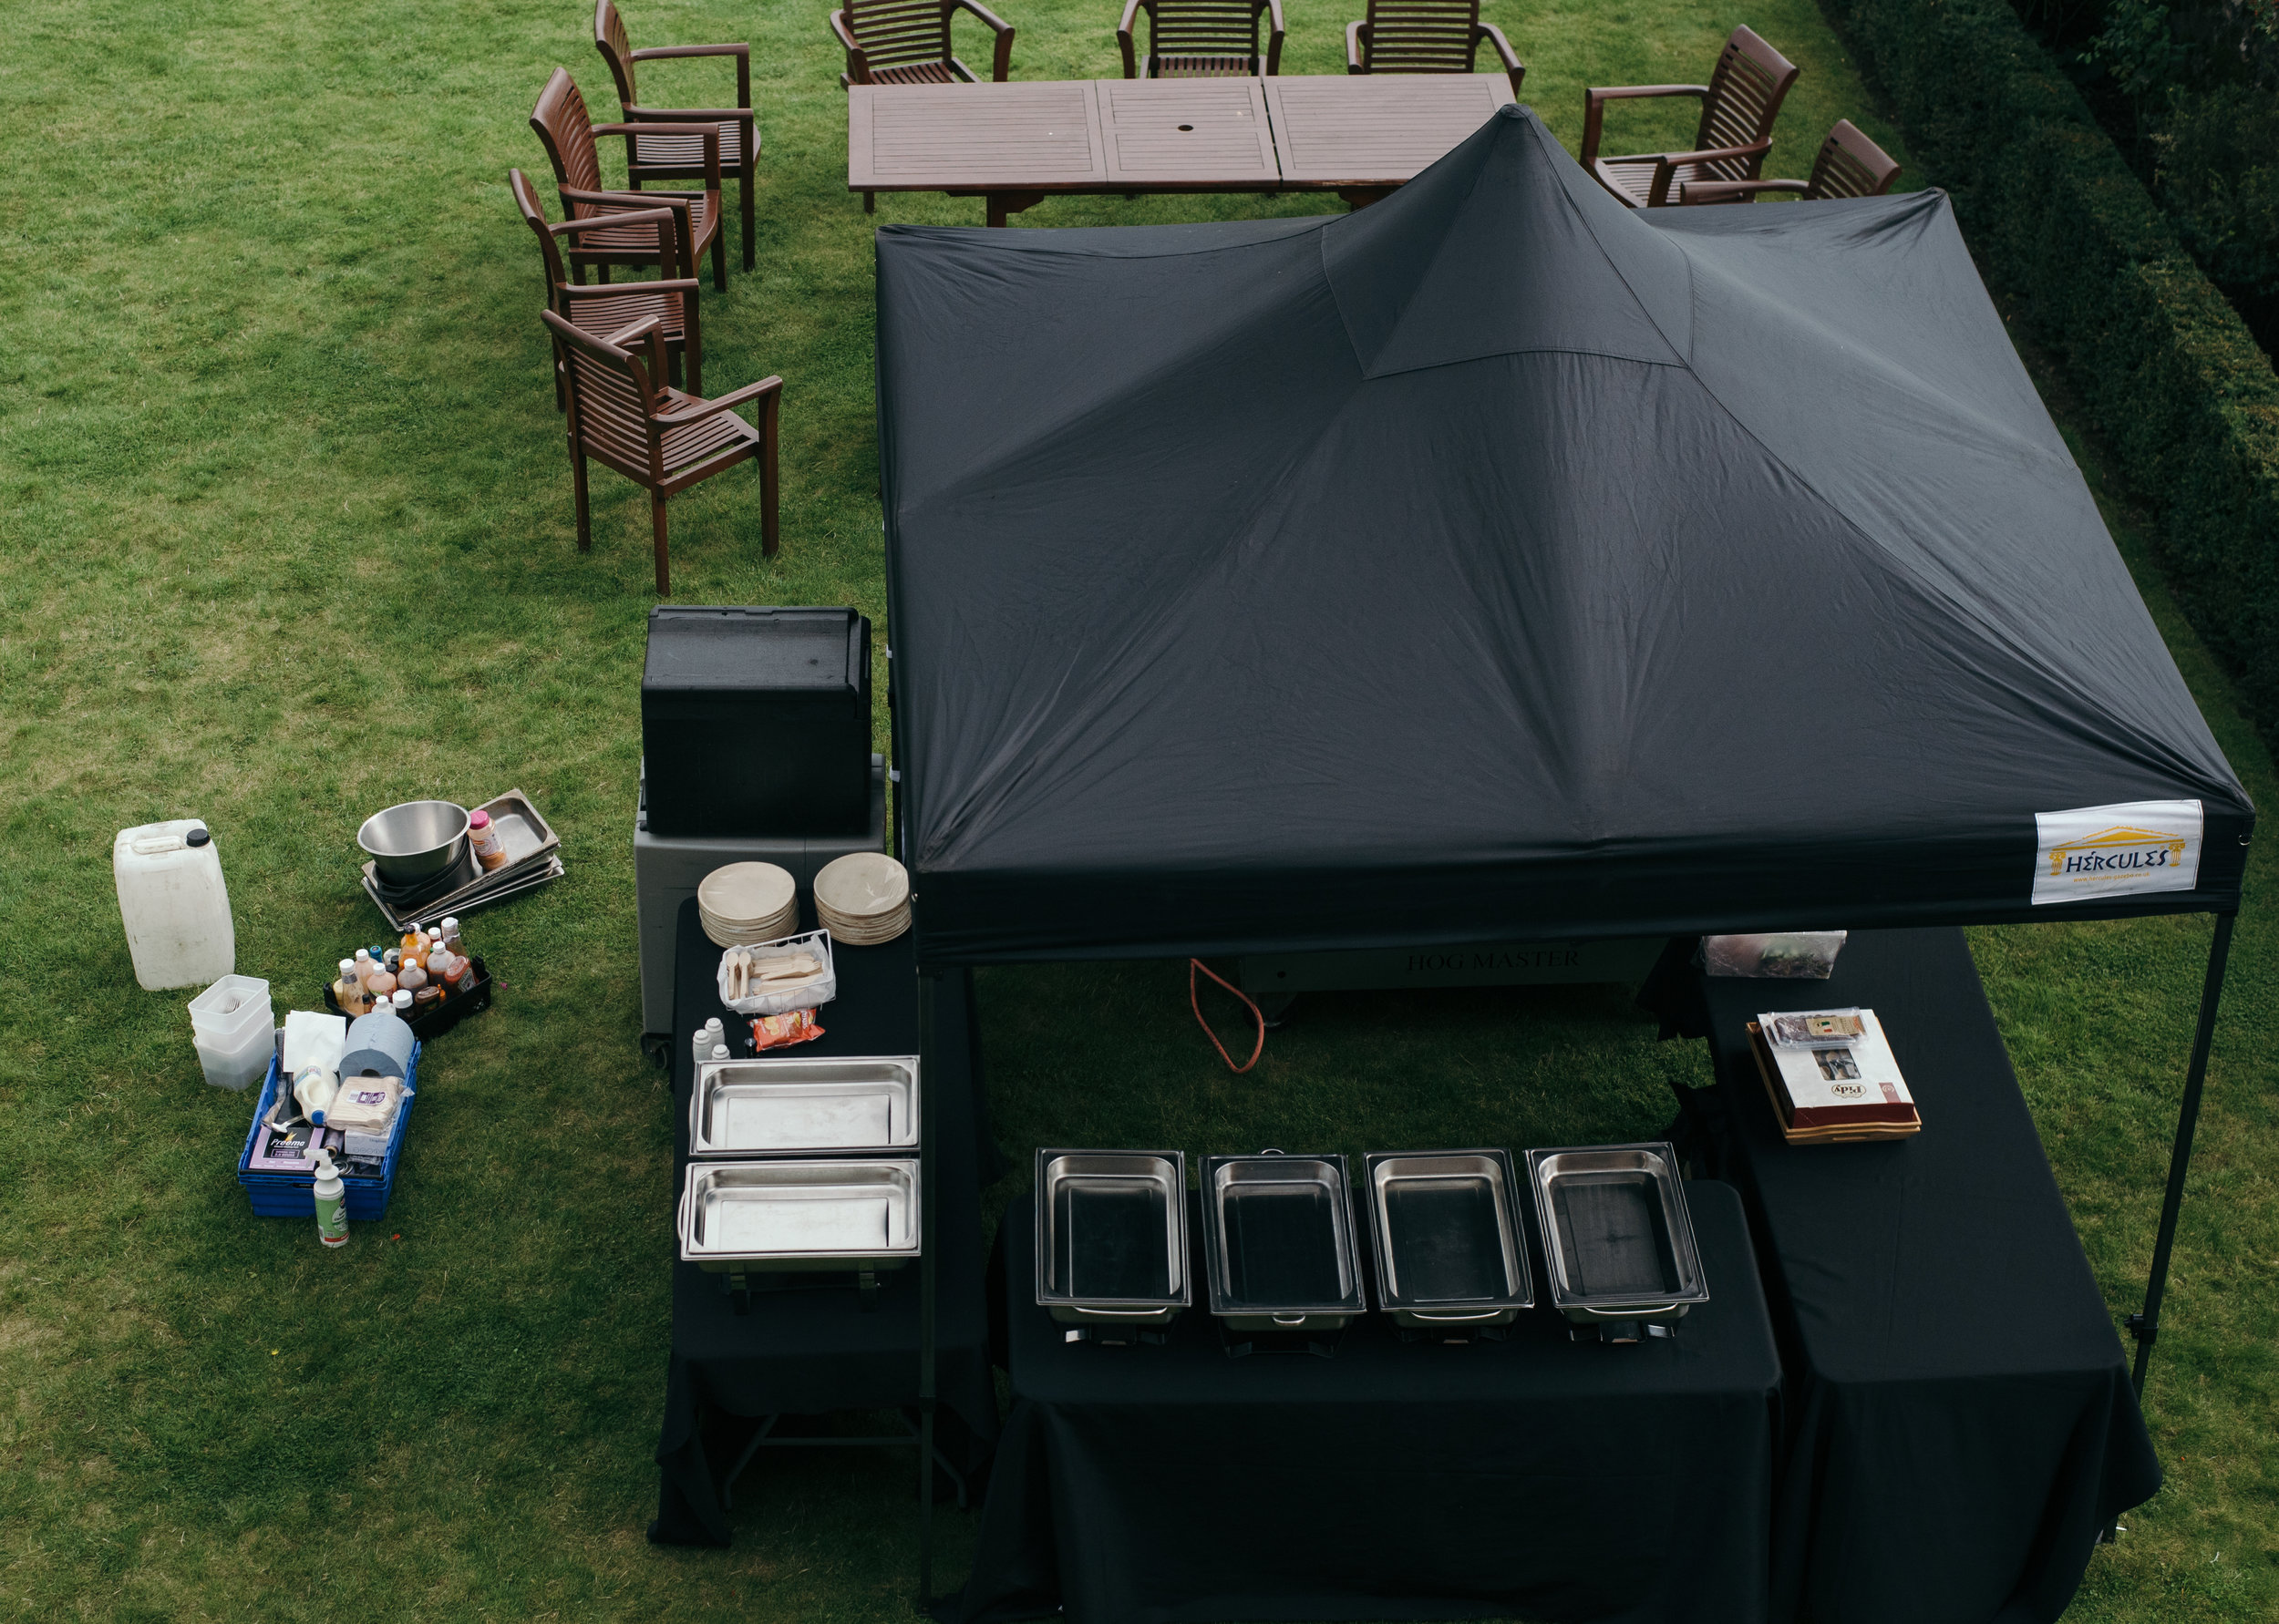 The caterers setting up for the afternoon barbecue